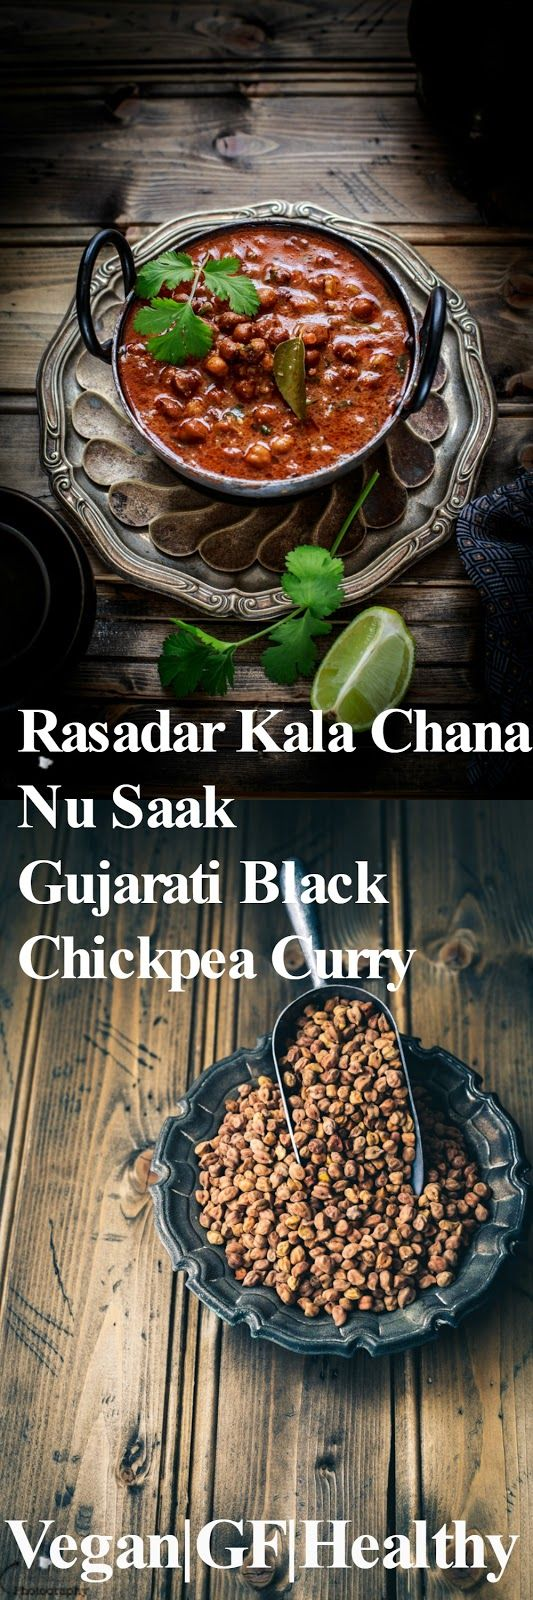 Delicious and healrhy rasadar kala chana nu Saak is a Gujarati recipe easy to prepare.